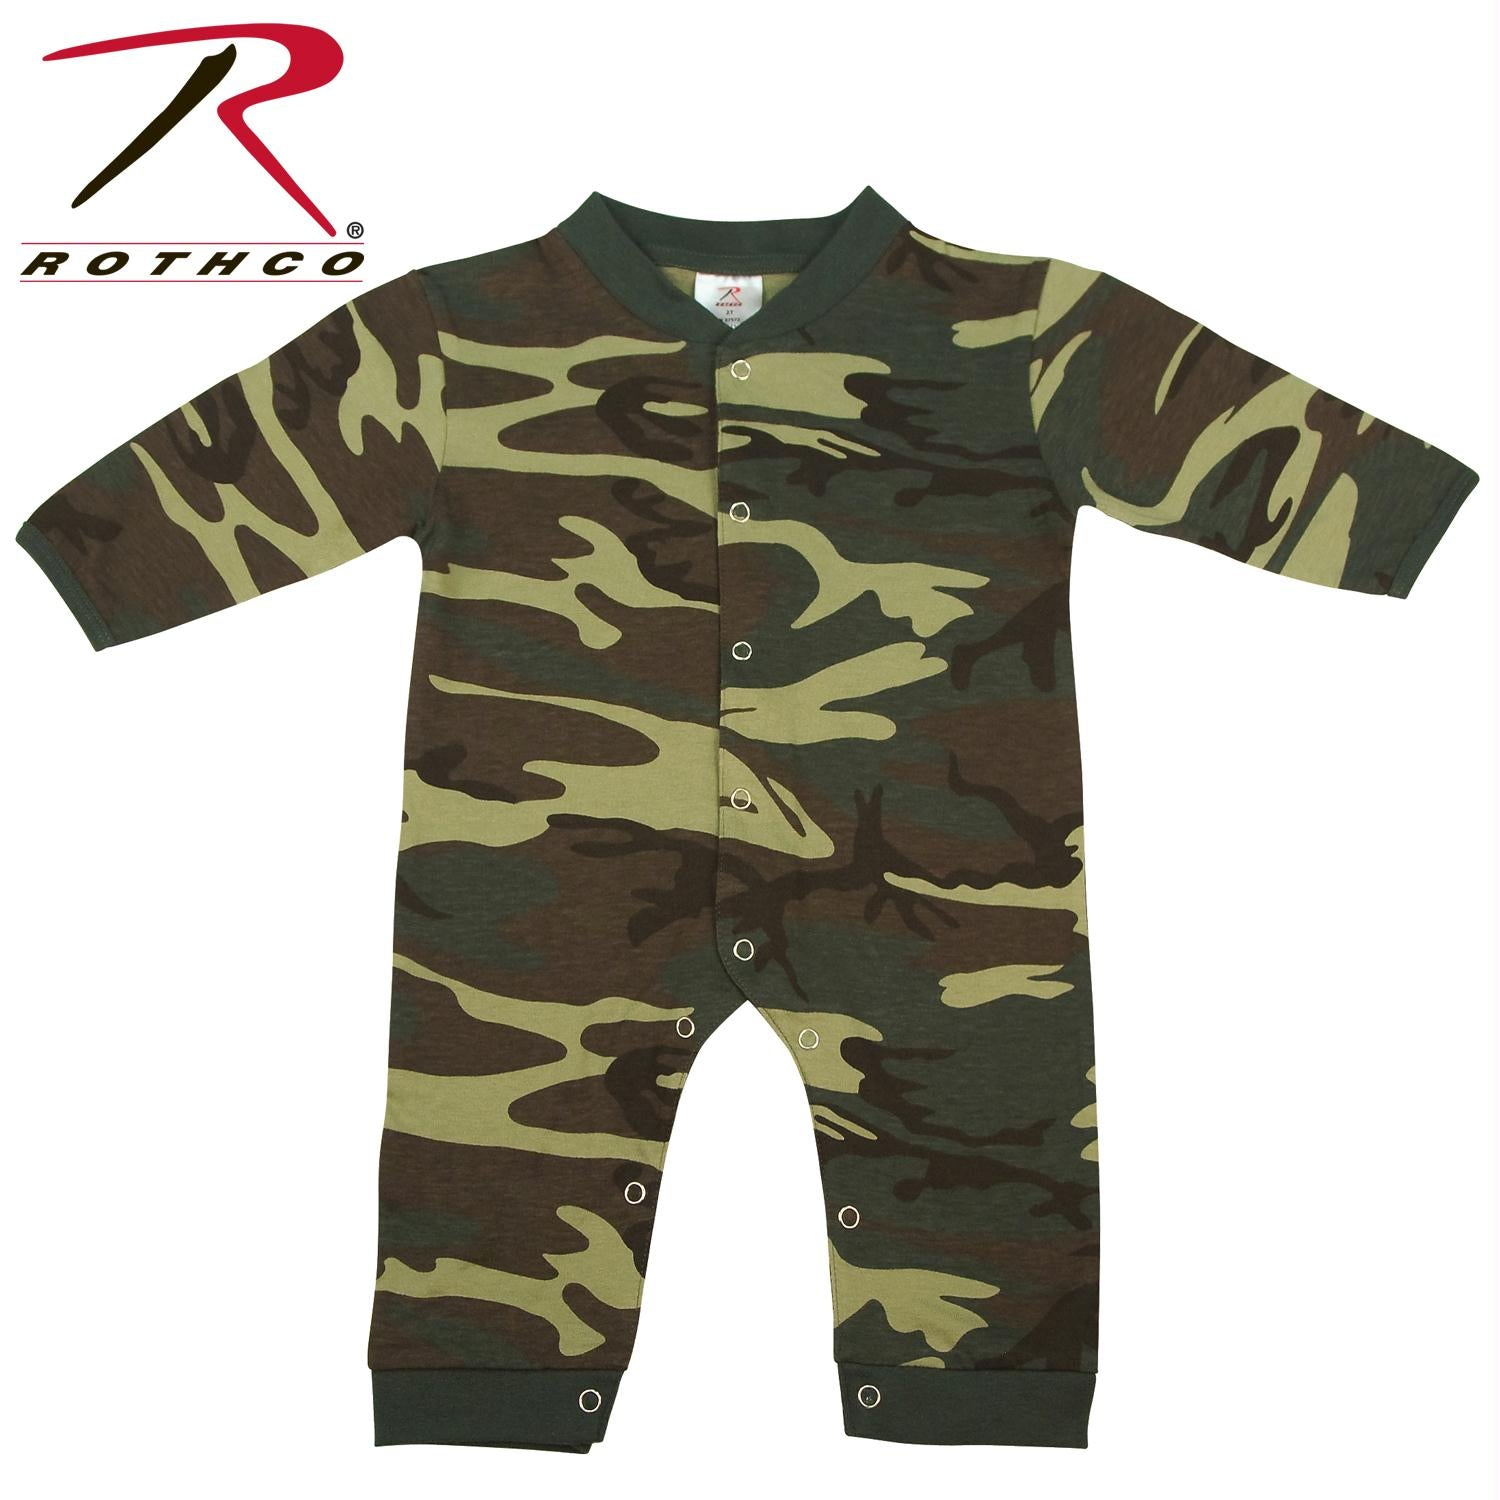 Rothco Infant Camo Long Sleeve and Leg One-piece Bodysuit - Woodland Camo / 9-12 Months